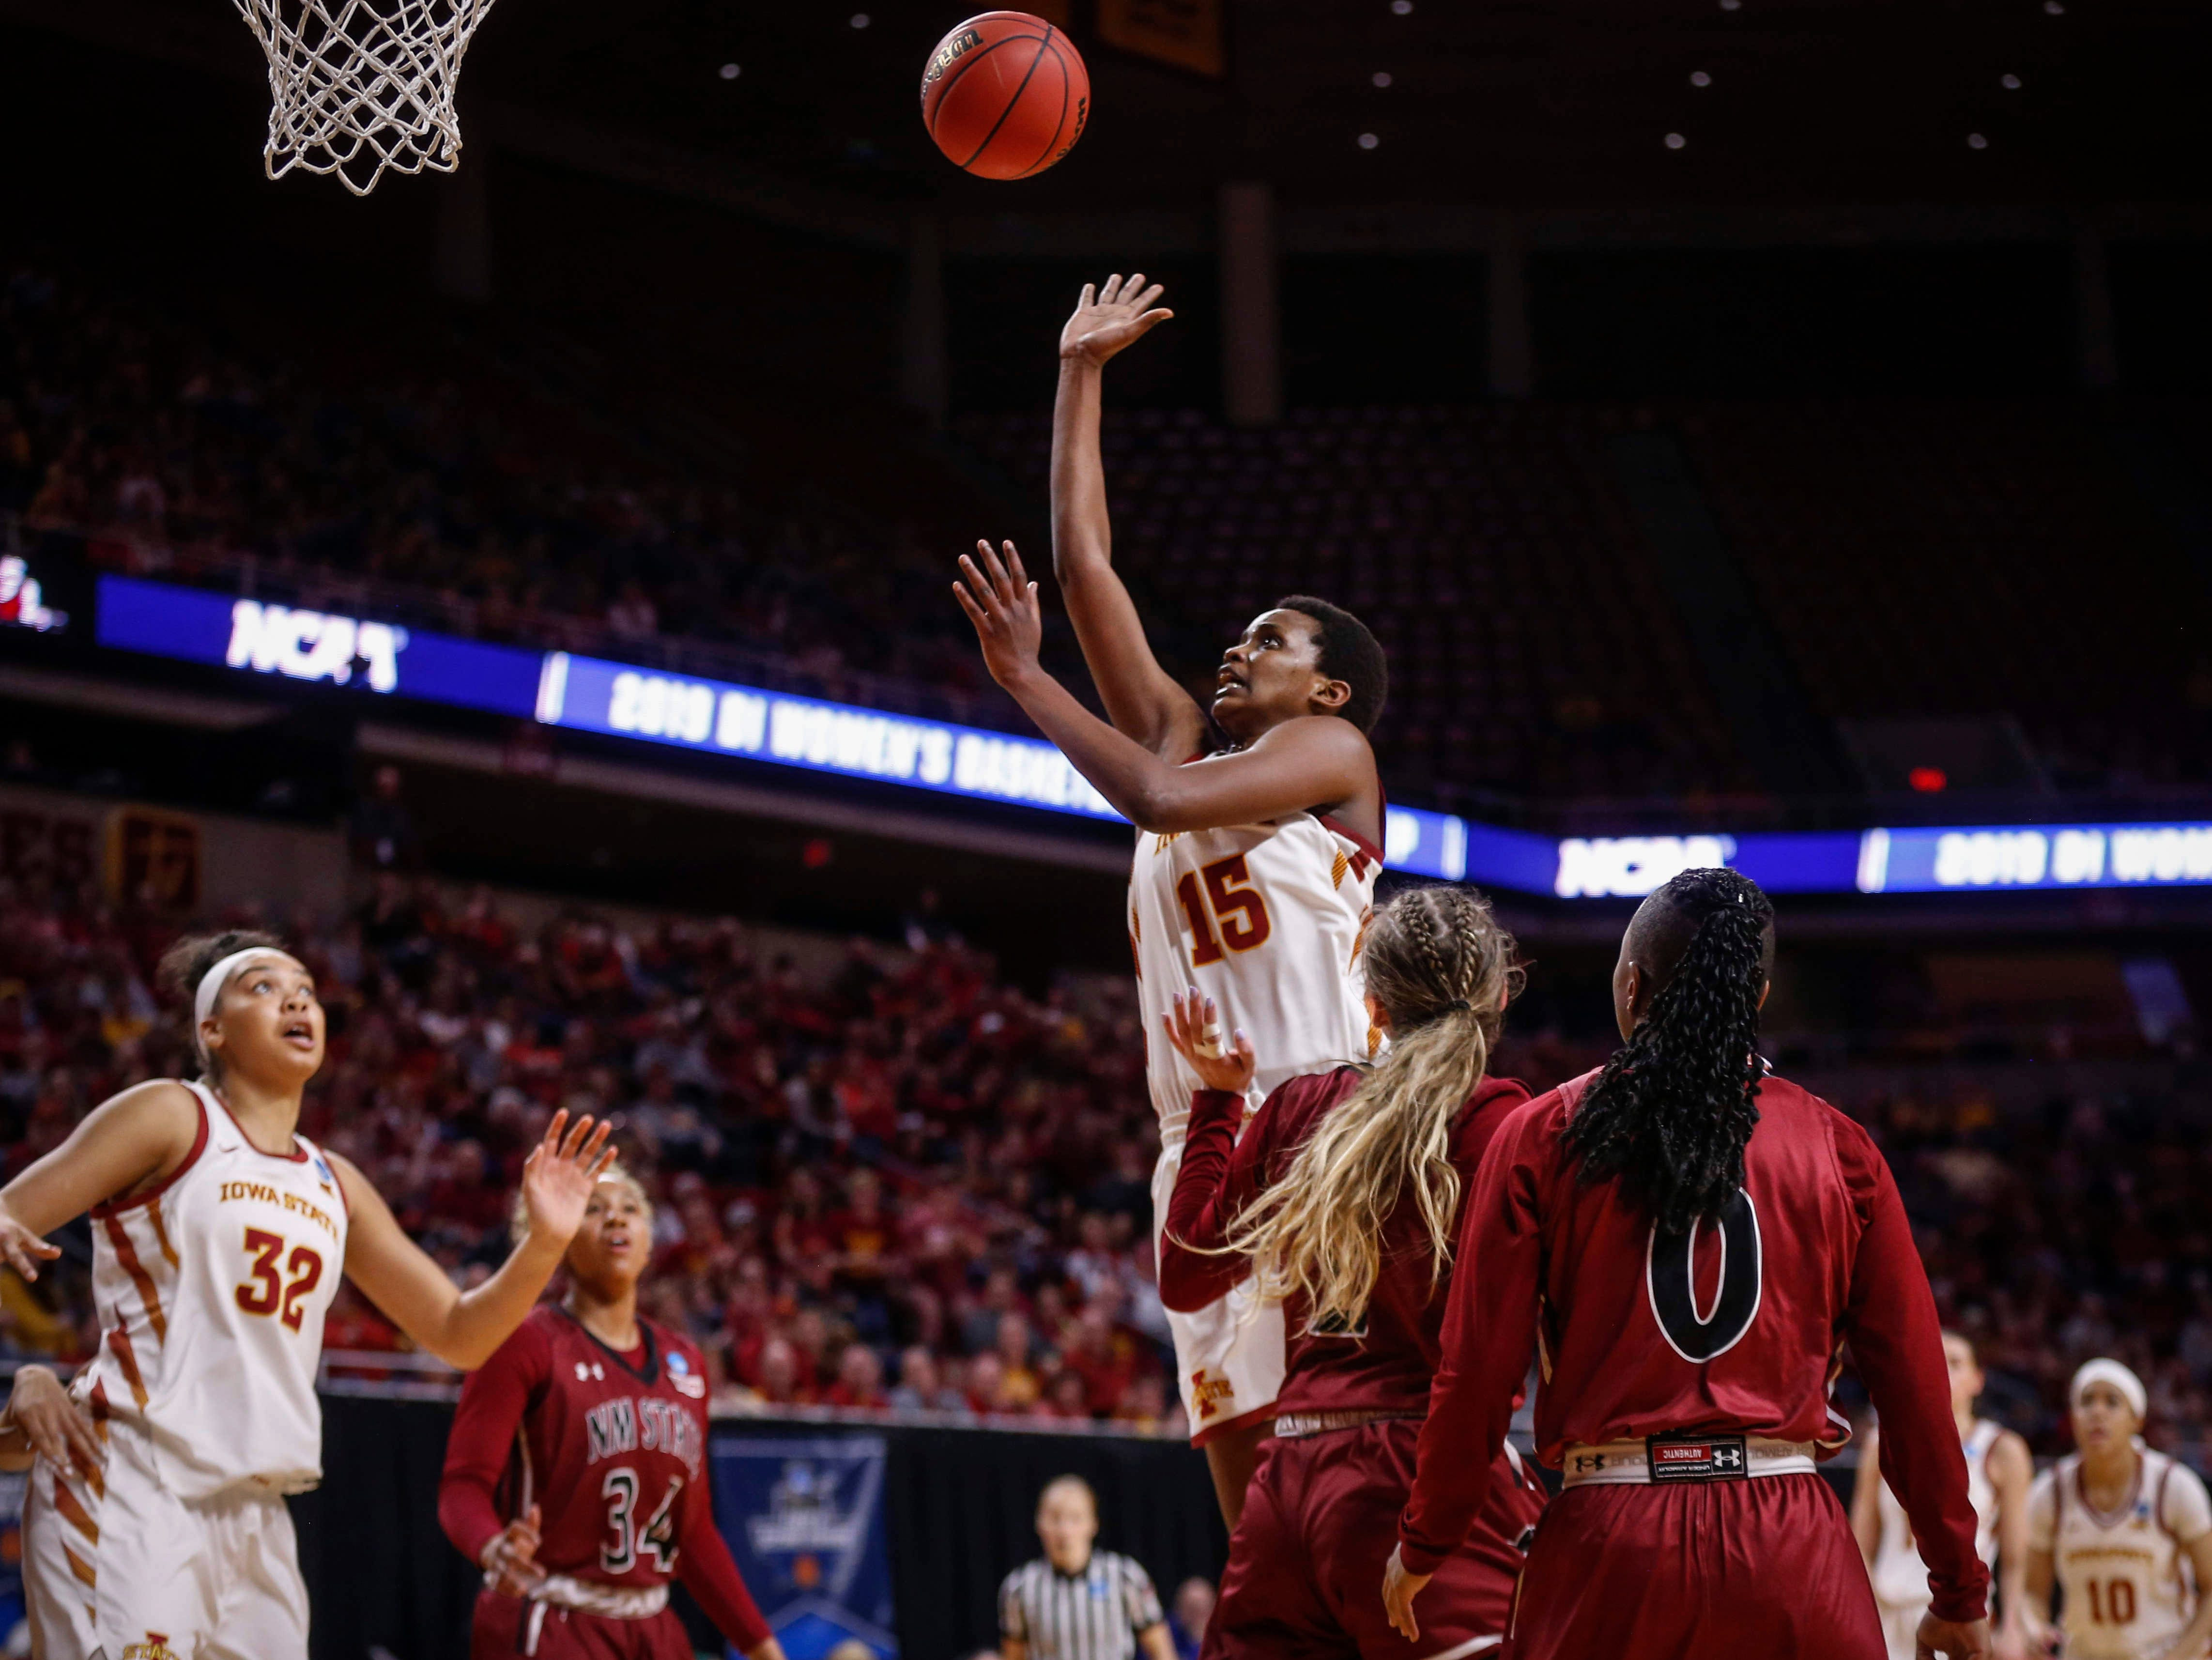 Iowa State senior Ines Nezerwa puts a shot up over New Mexico State senior Brooke Salas in the fourth quarter on Saturday, March 23, 2019, at Hilton Coliseum in Ames.